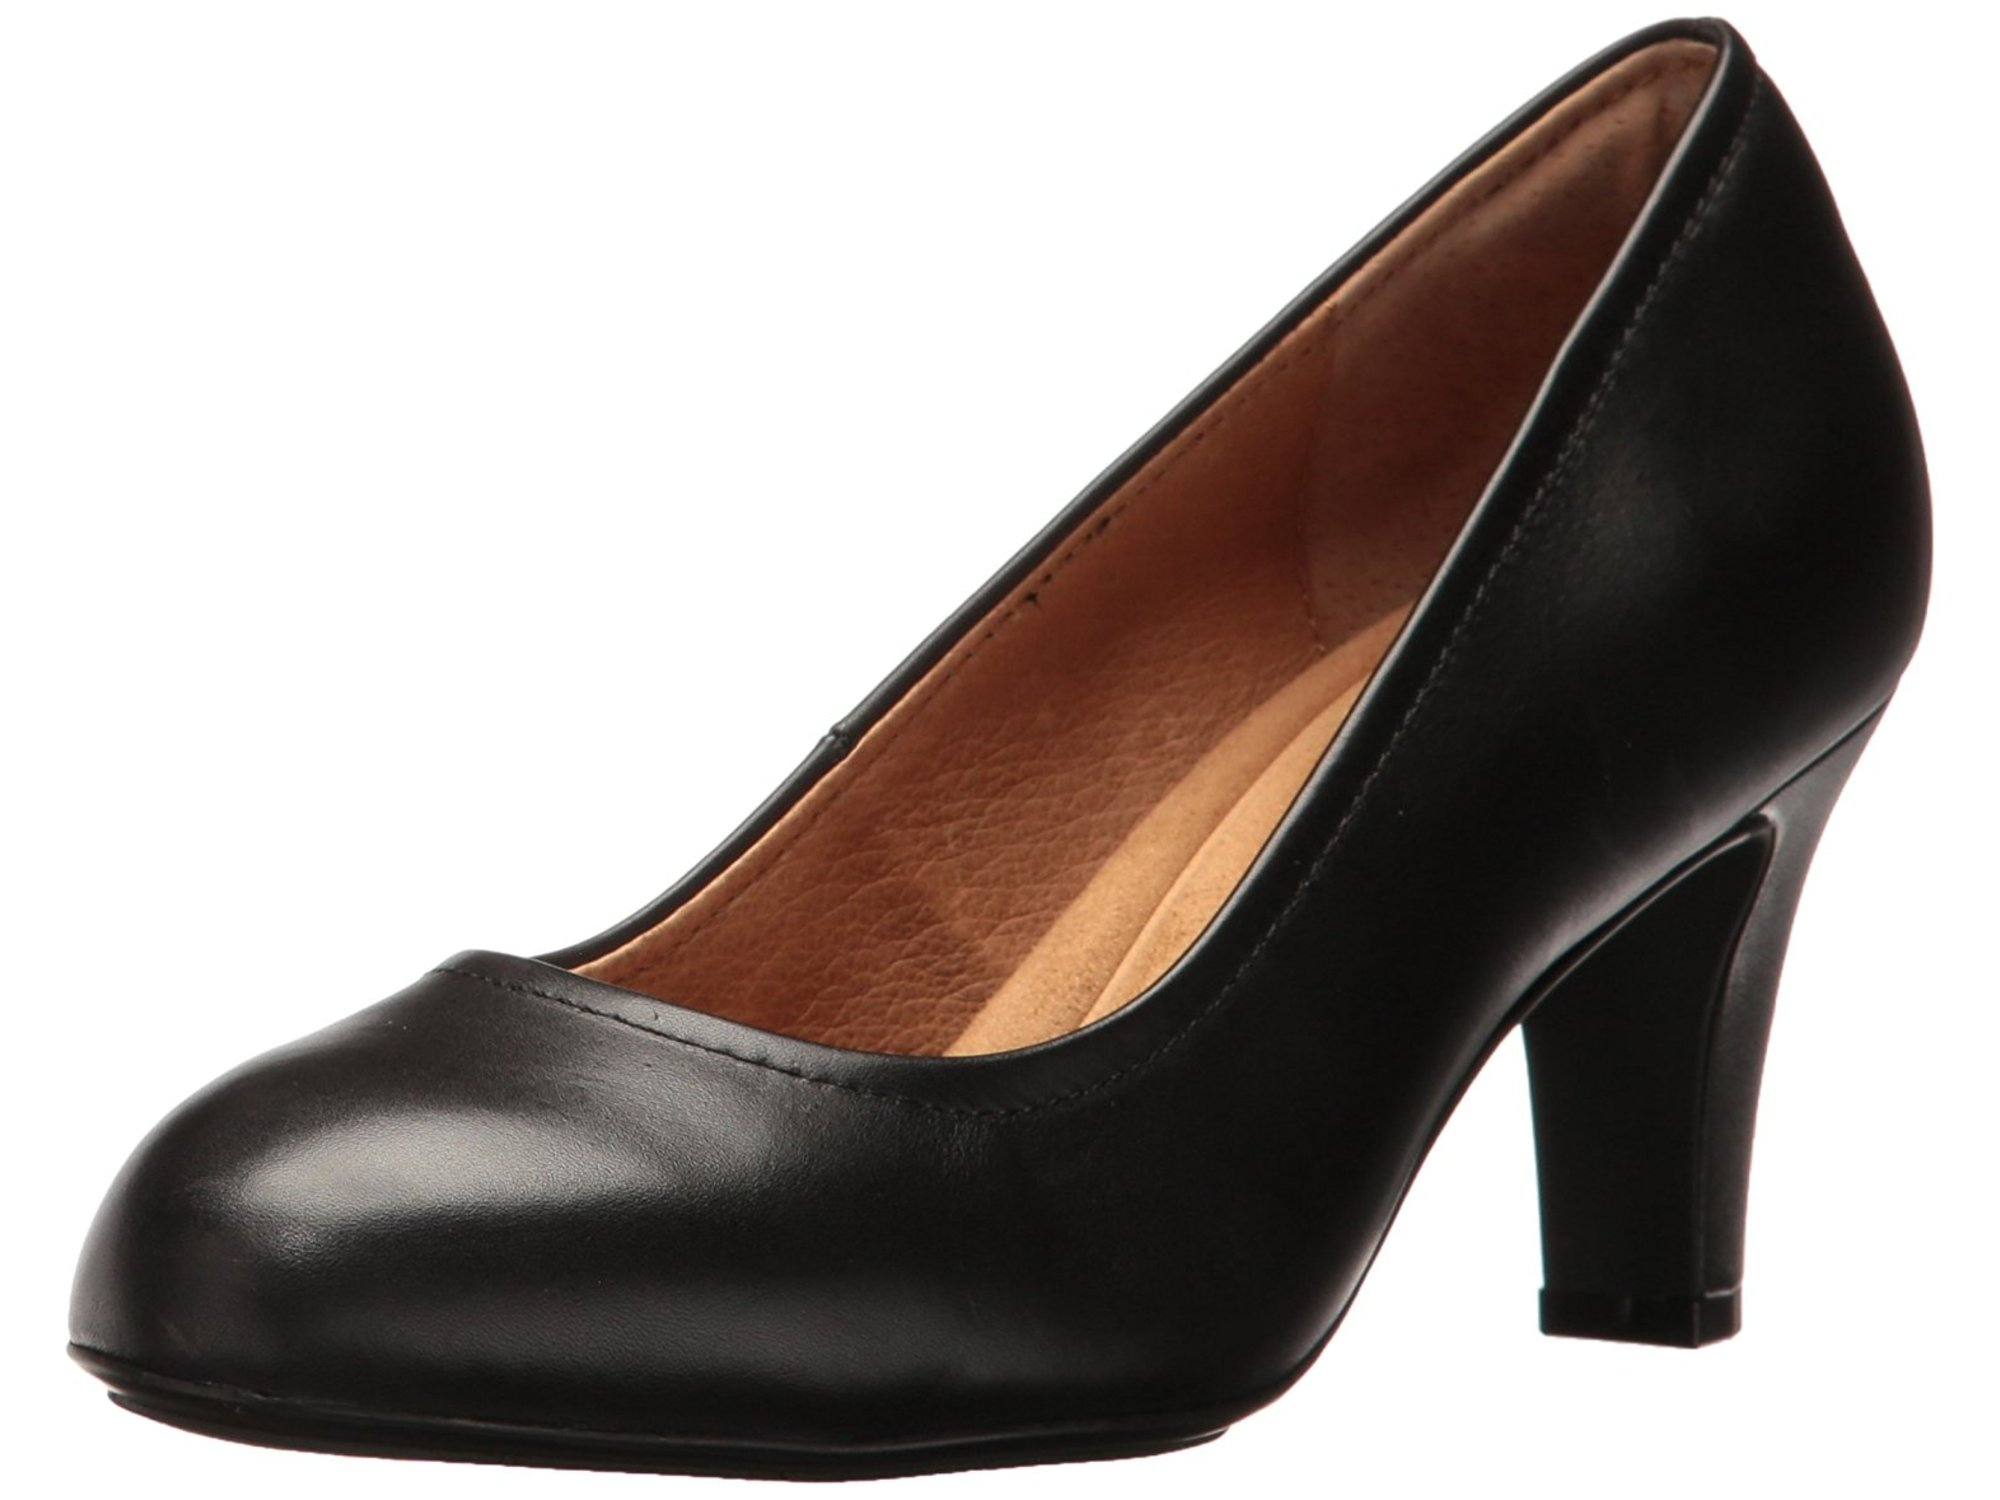 Sofft Womens Turin Leather Closed Toe Classic Pumps by Sofft